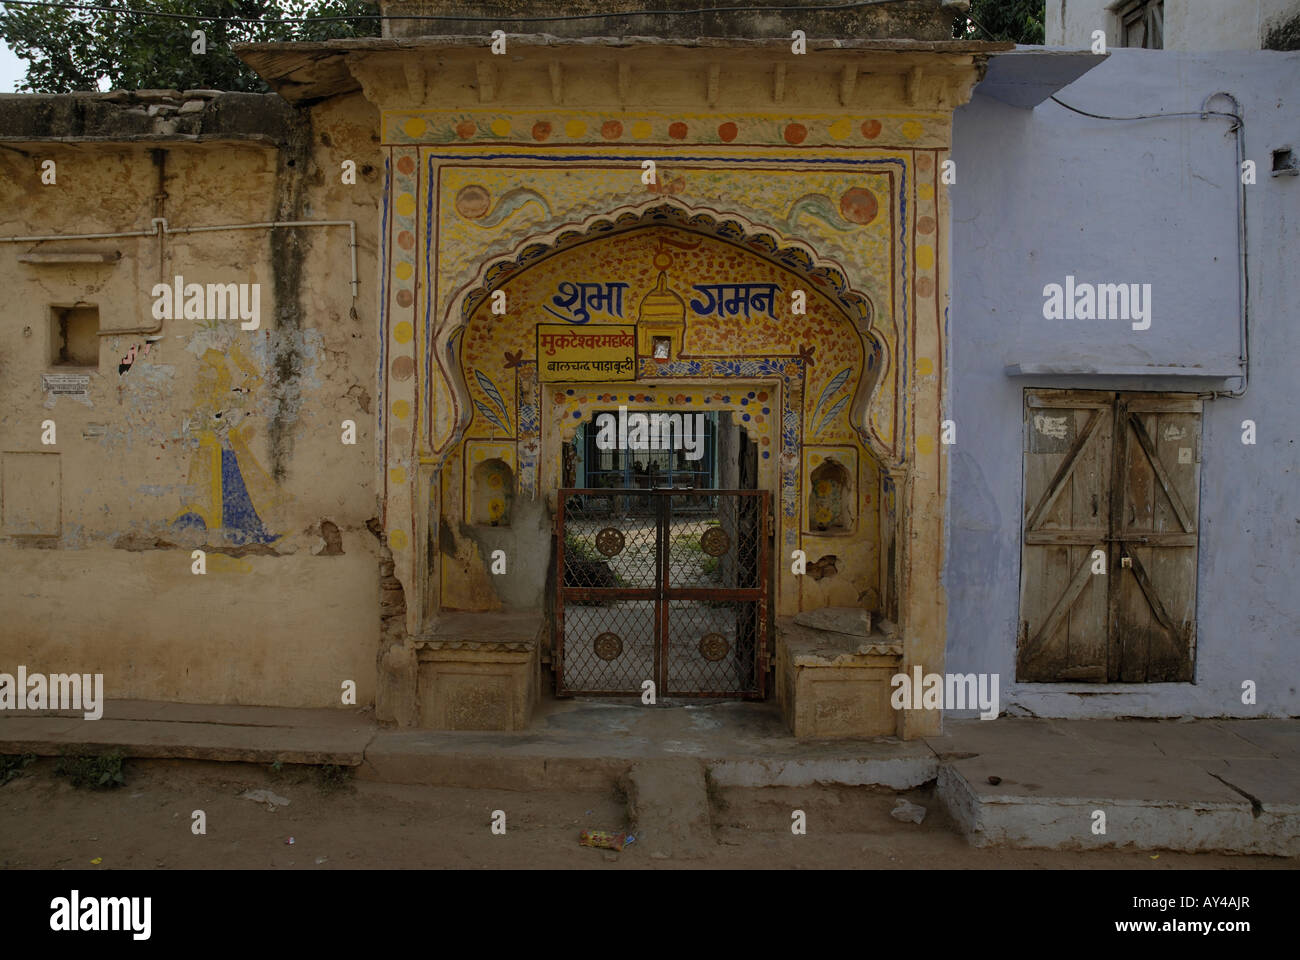 960 #5F4A2C Ornate Front Door Of Old Haveli In Bundi Rajasthan India Stock Photo  picture/photo Ornate Front Doors 39791300